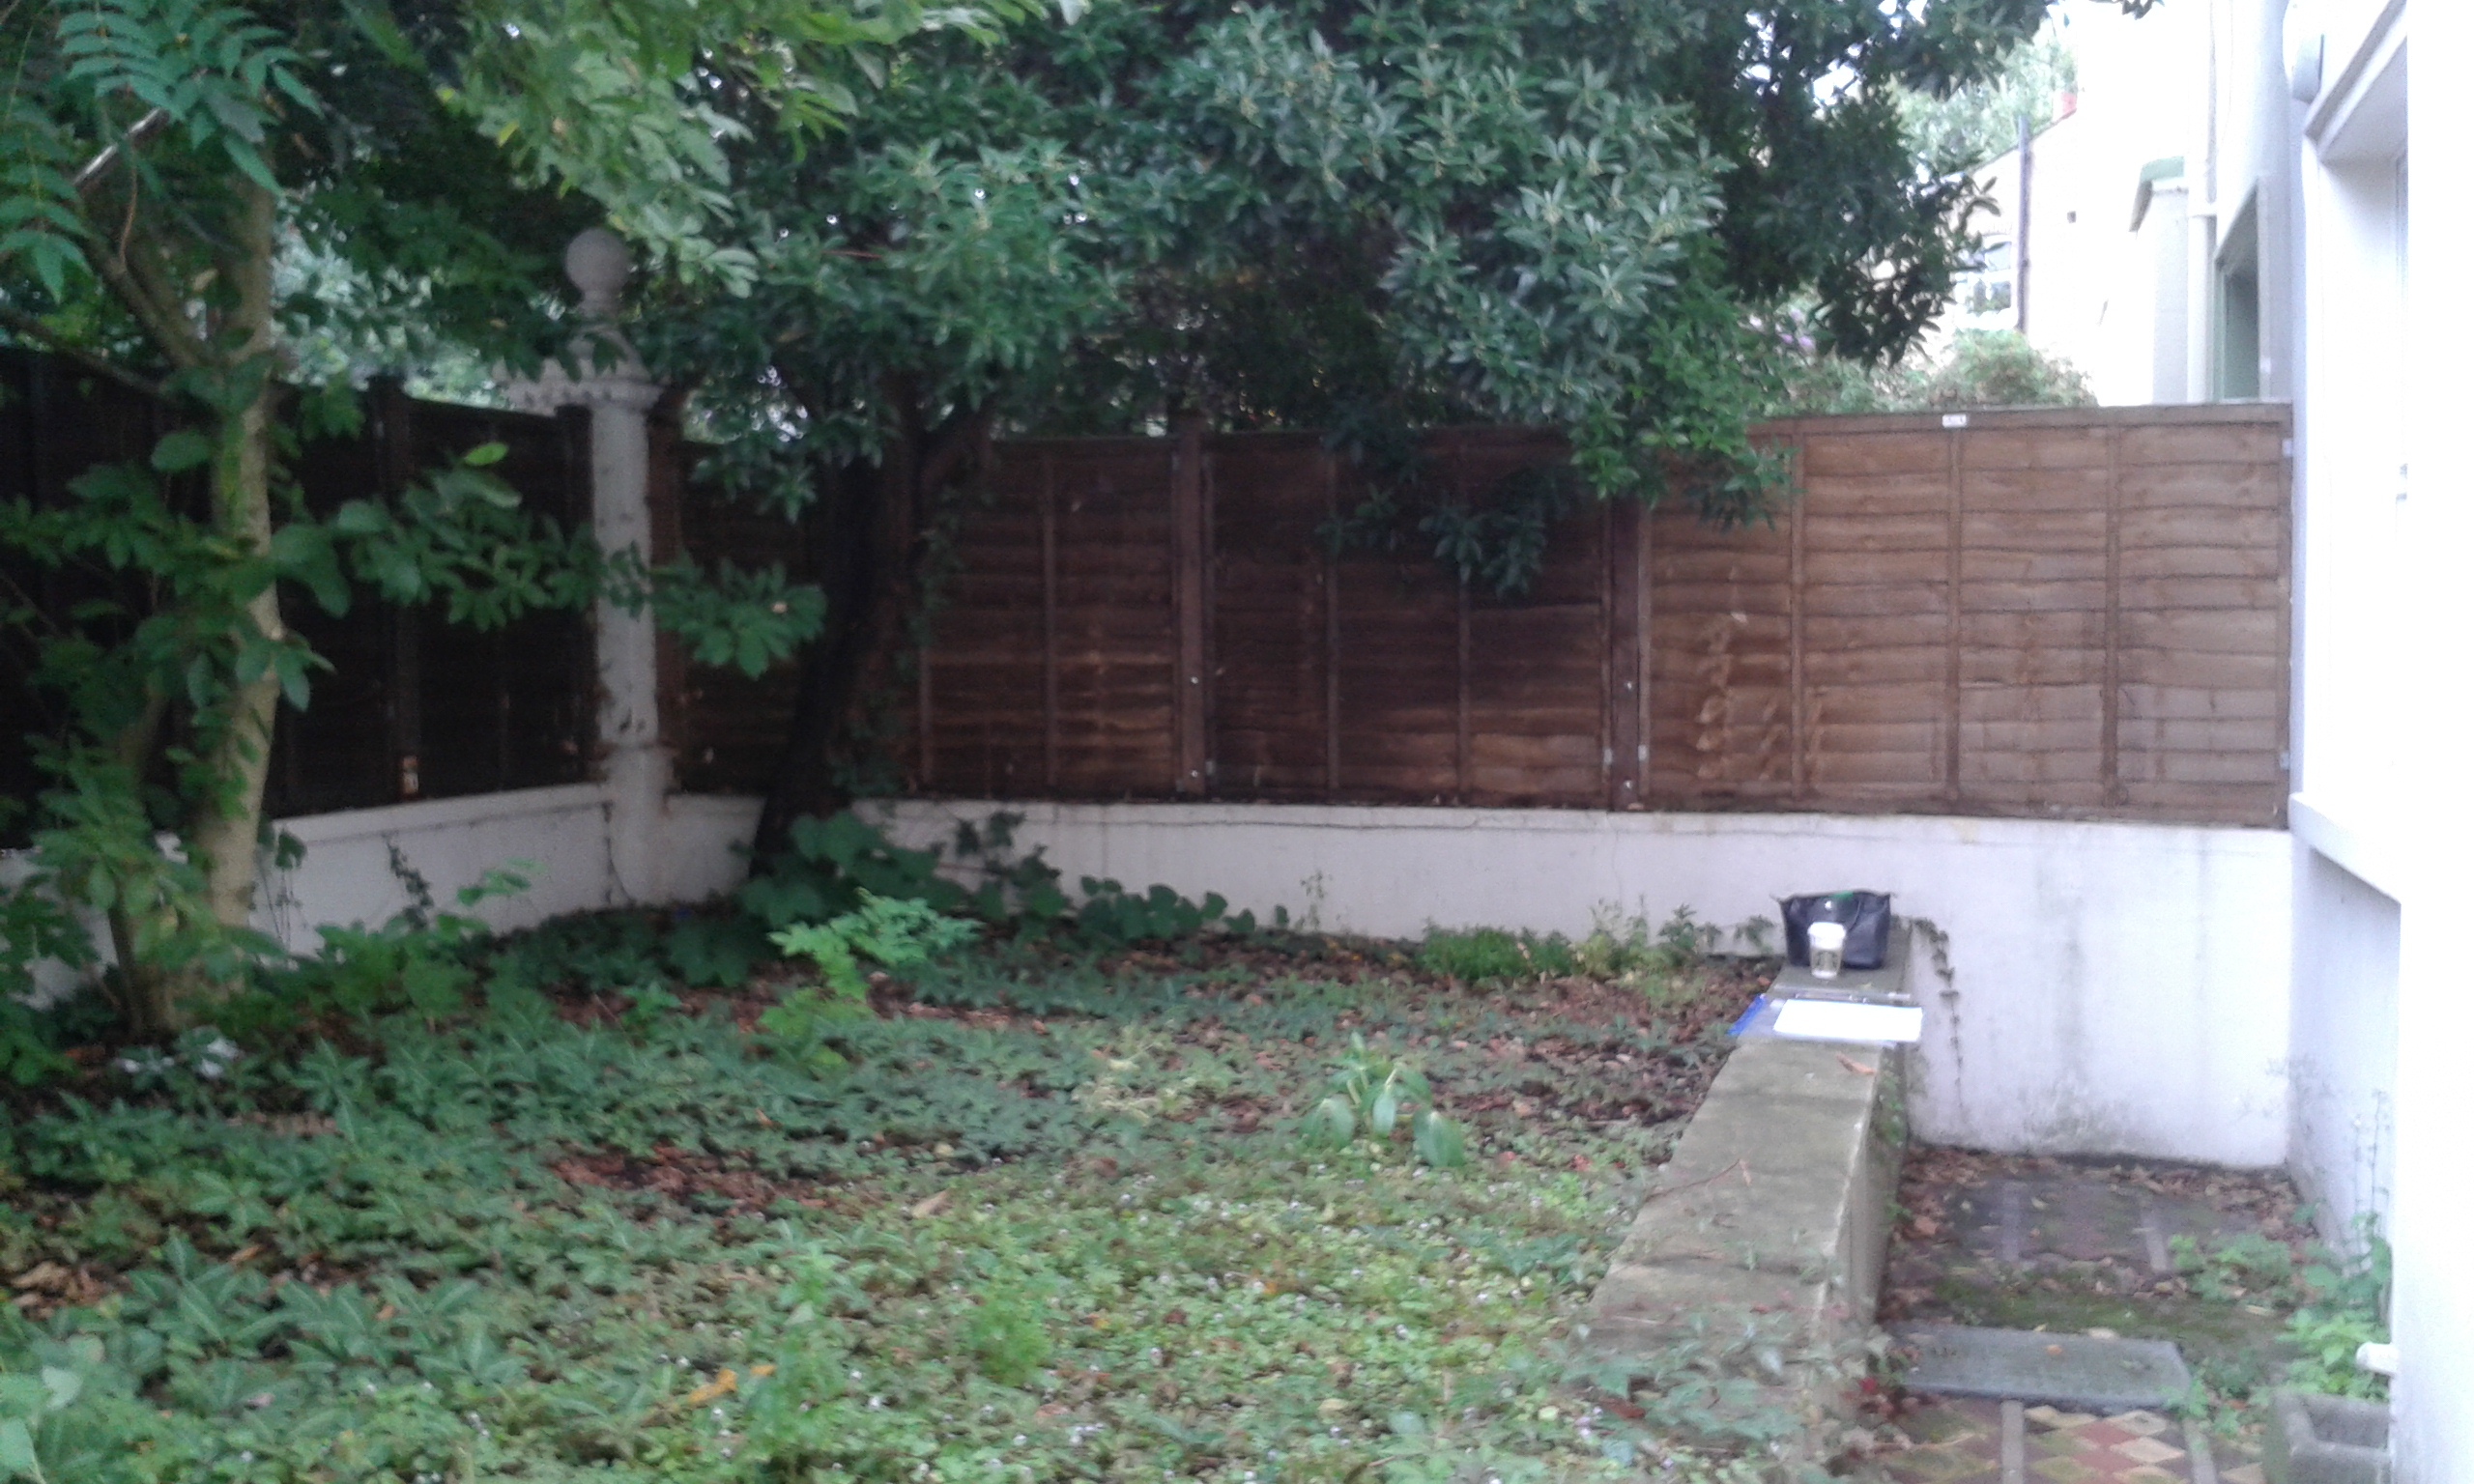 Before U0026 After In Fulham   Raised Area Dug Out And Replaced With Pavers,  Raised Borders And A Bench Built In Too: